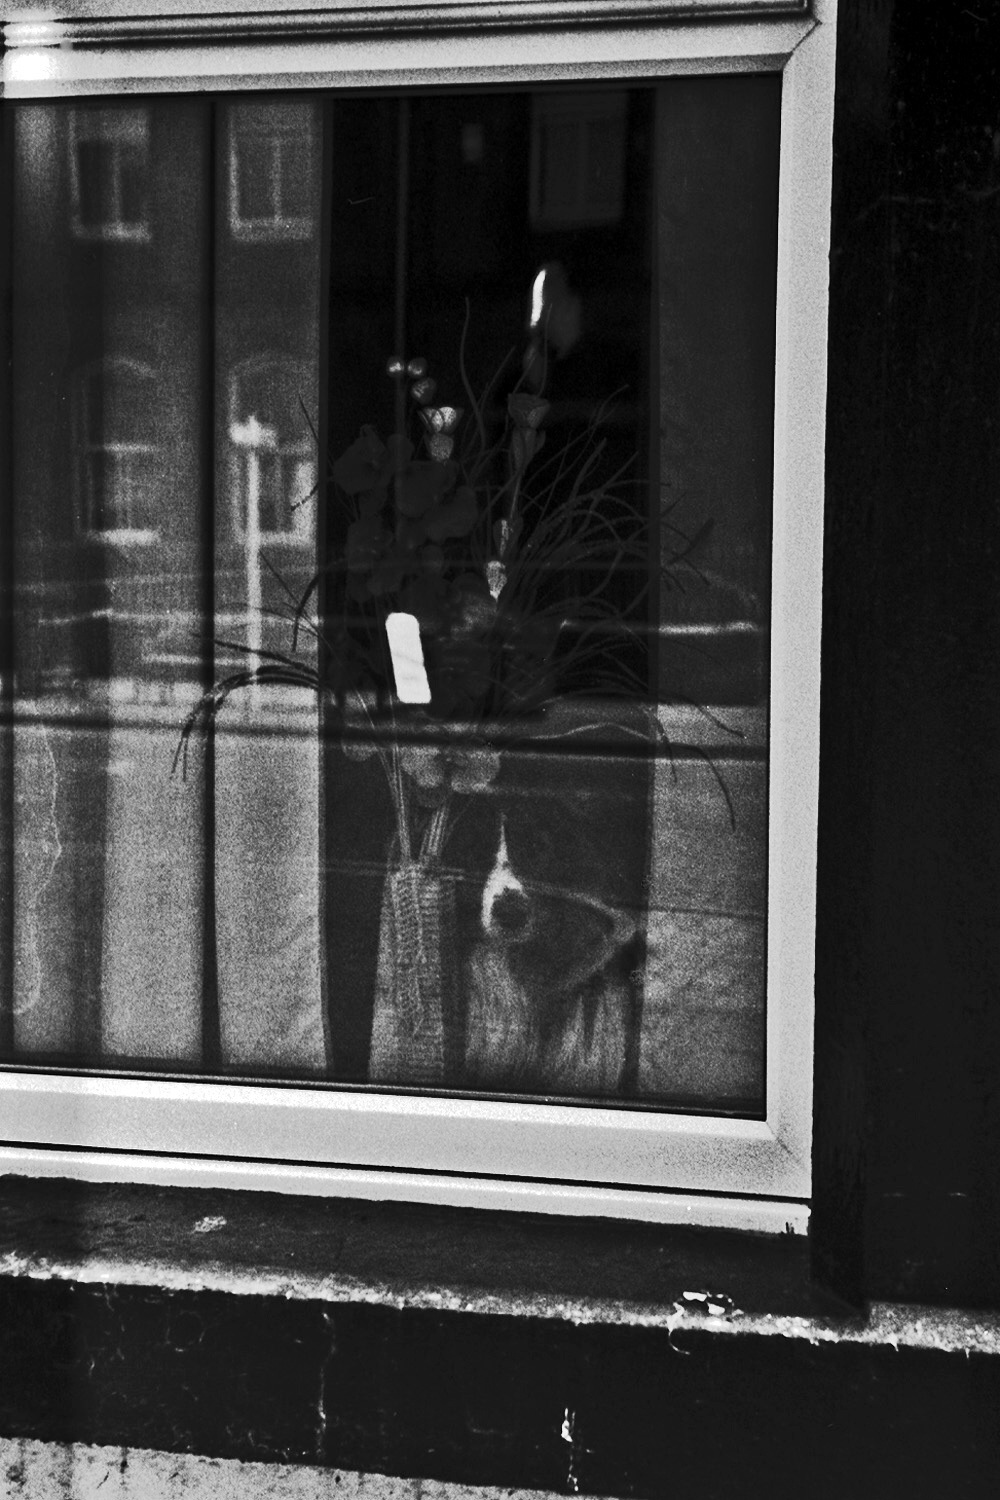 dog looks out of window egremont street photography uk photographer kevin shelley prints for sale leica m2 jupiter 8 50 f2